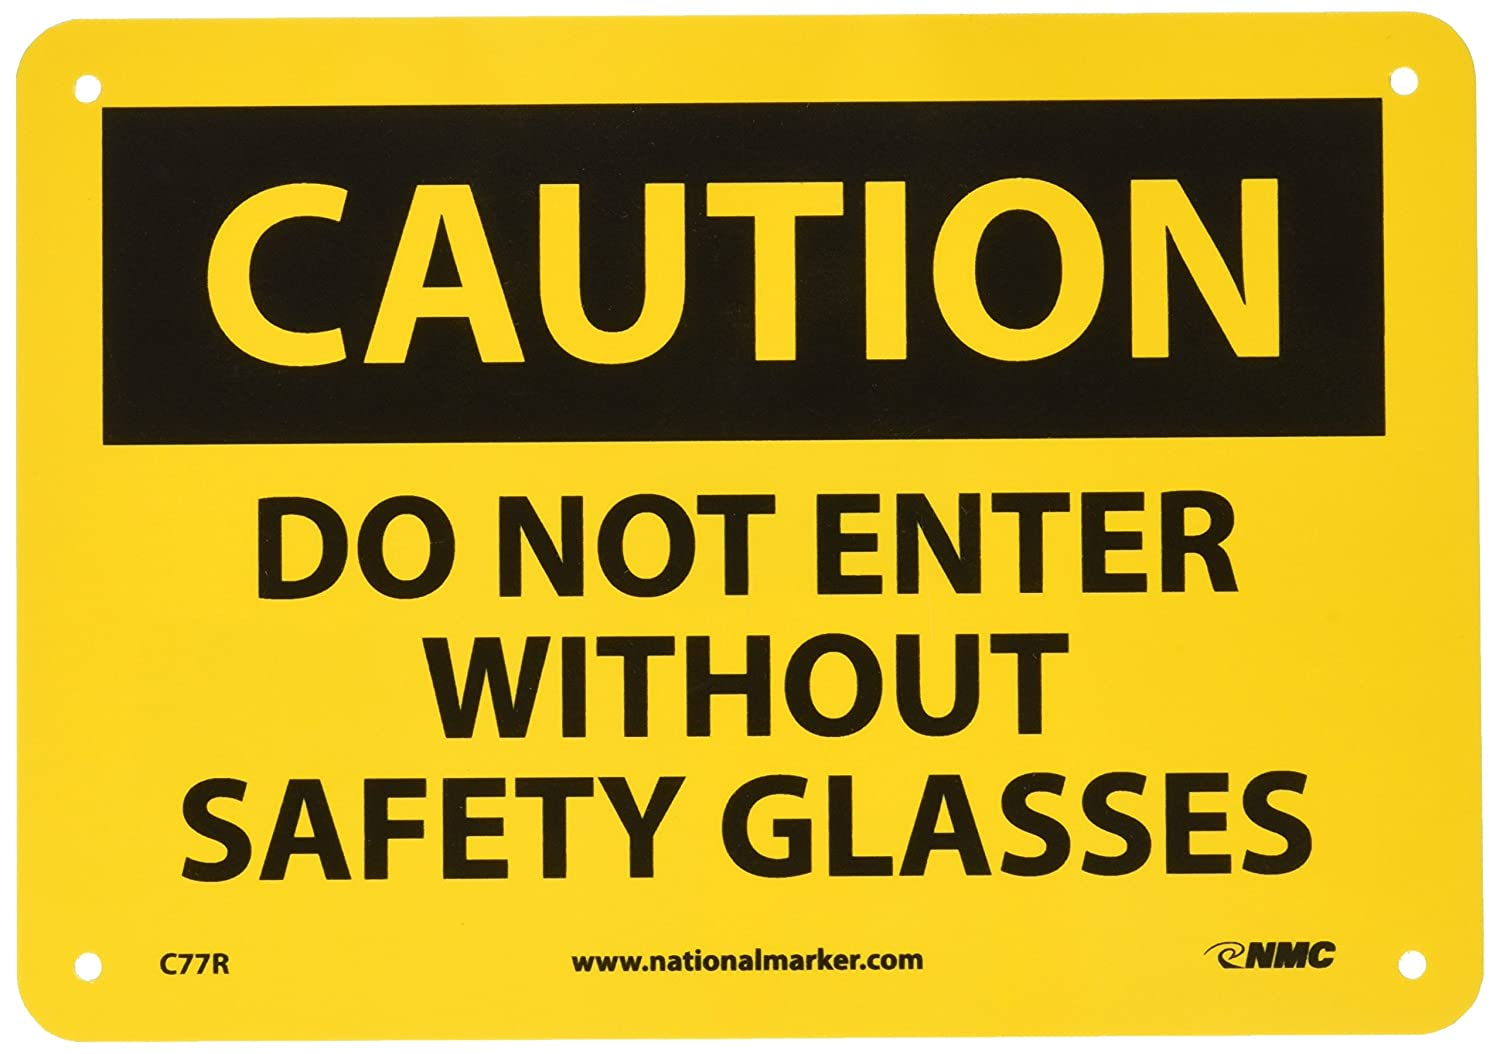 DO NOT ENTER WITHOUT SAFETY GLASSES NMC C77R OSHA Sign Legend CAUTION Black on Yellow Rigid Plastic 10 Length x 7 Height